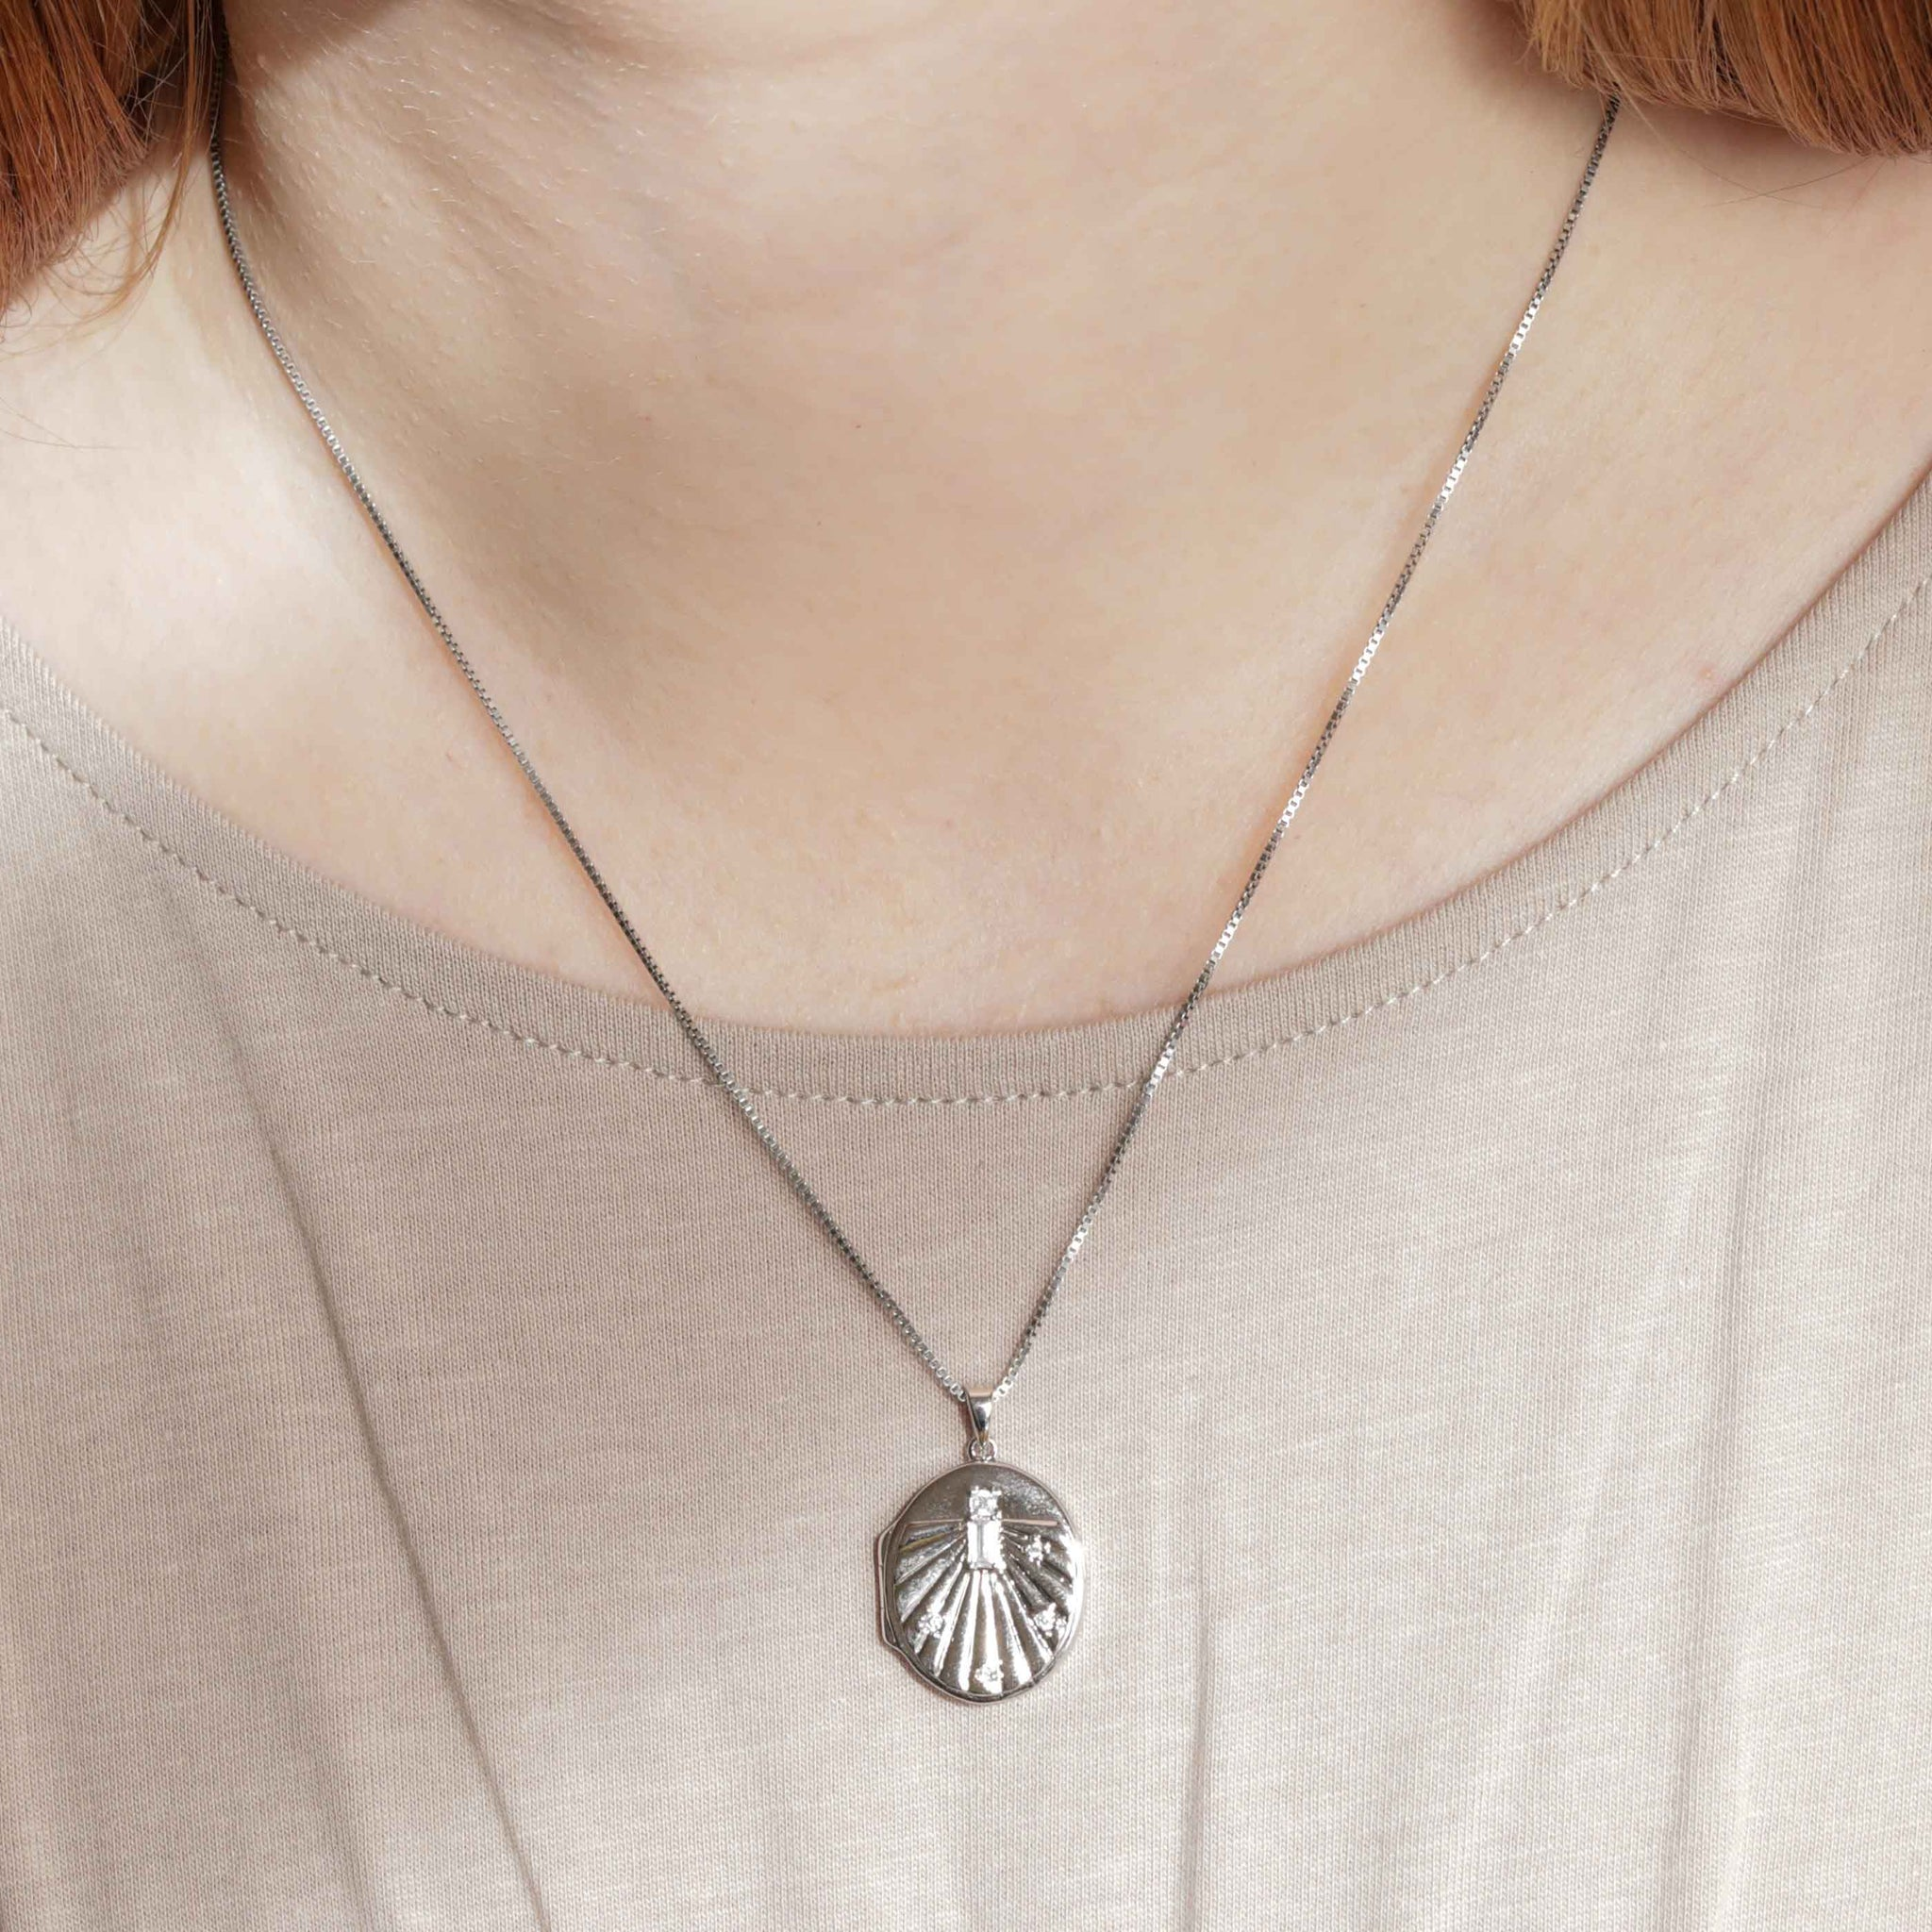 Solstice Locket Pendant Necklace in Silver